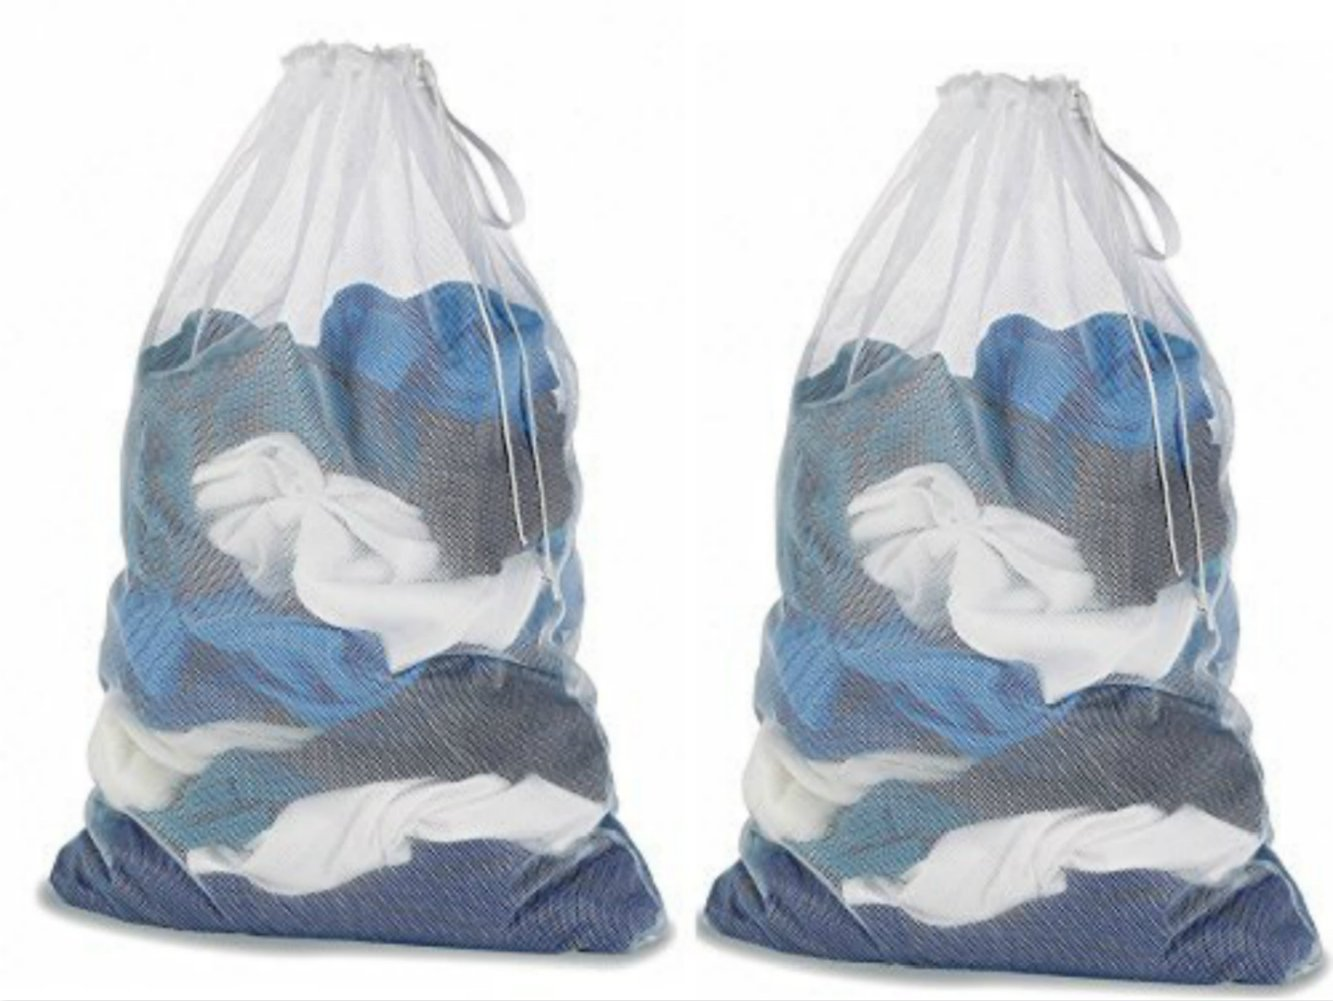 Mesh Laundry Bag White 25-inch L x 36-Inch 2 pack Laundry Bag 2